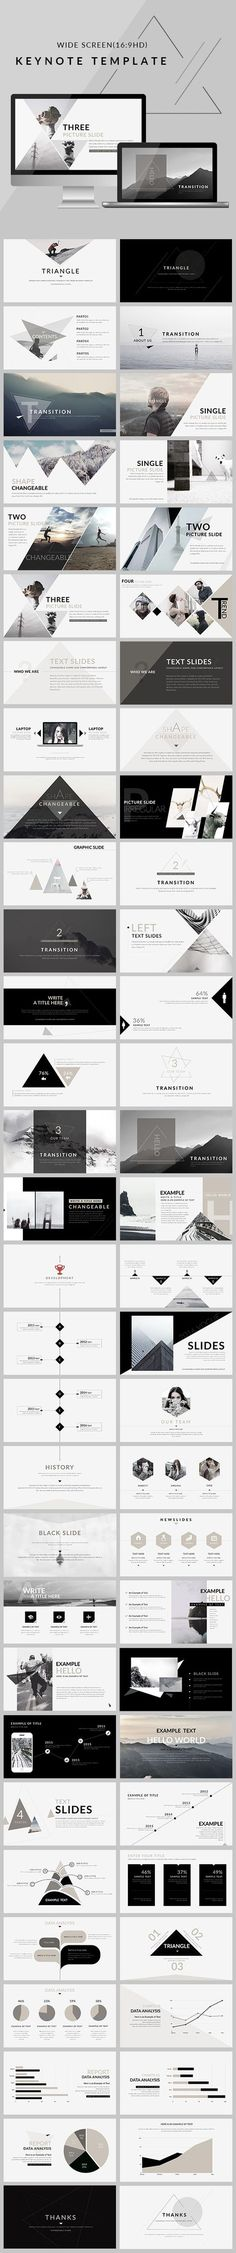 7 best marketing plan template images on pinterest info graphics triangle clean trend keynote template toneelgroepblik Choice Image